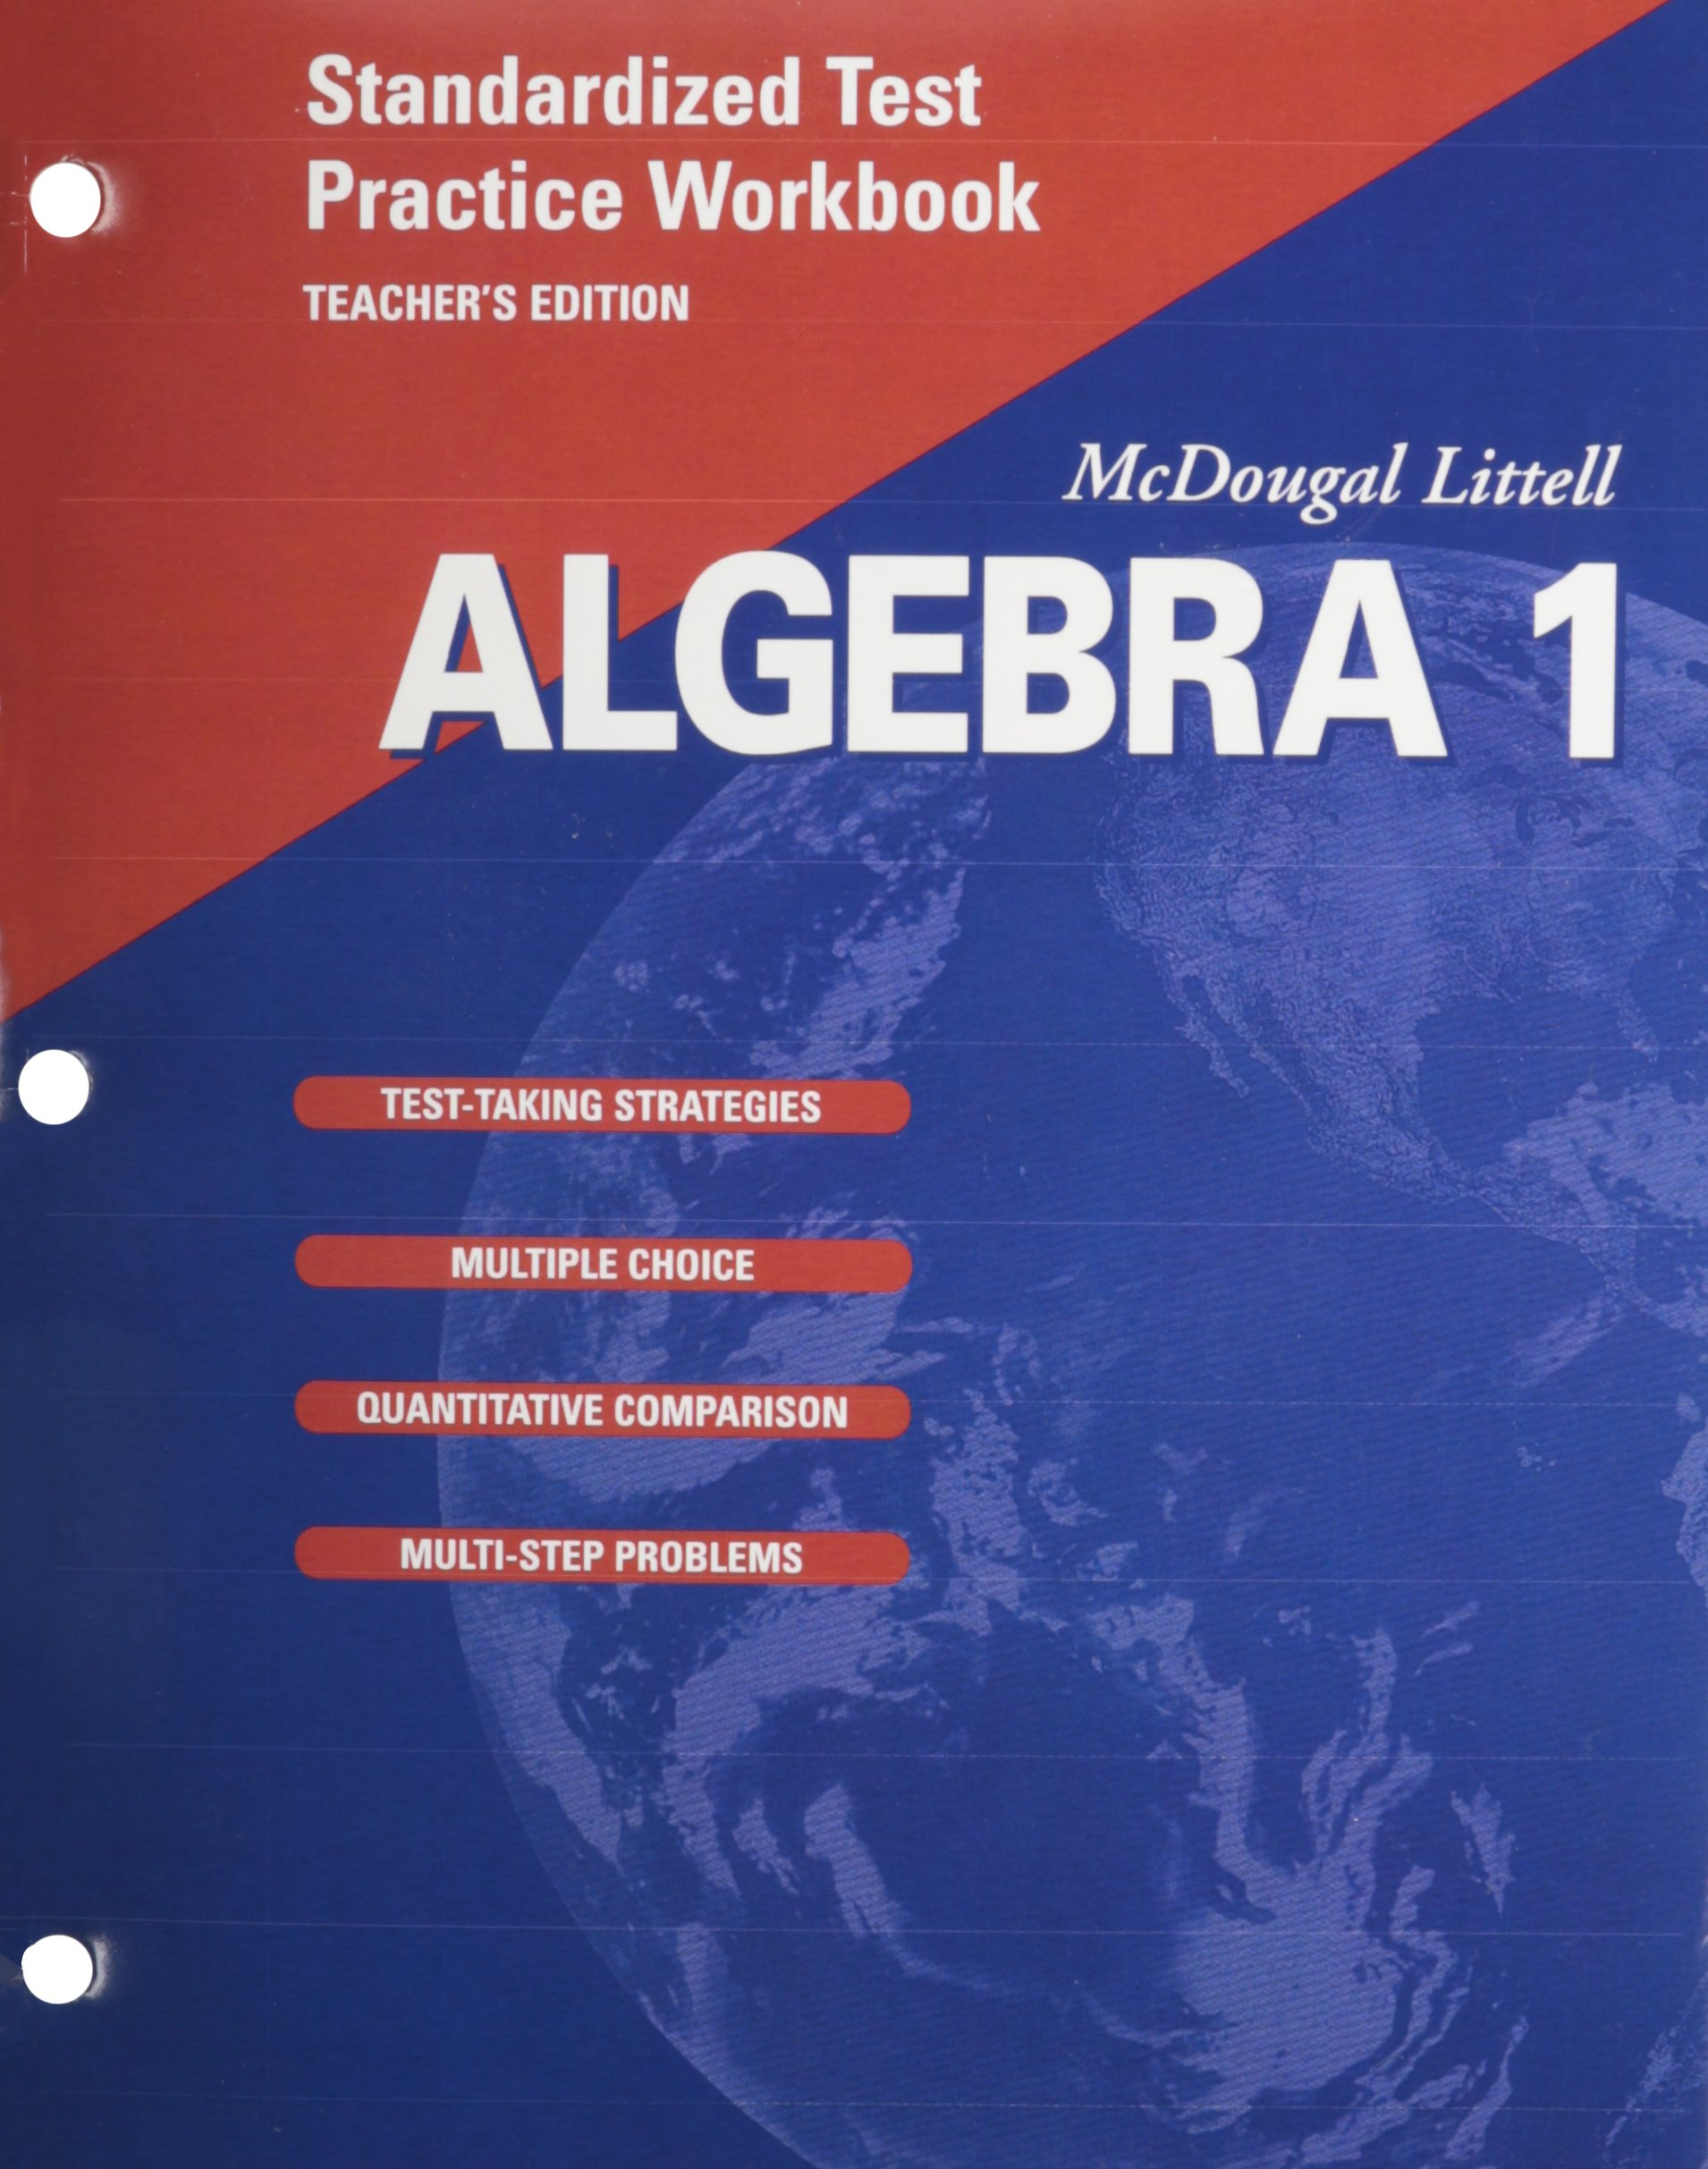 McDougal Littell Algebra 1: Standardized Test Practice Workbook